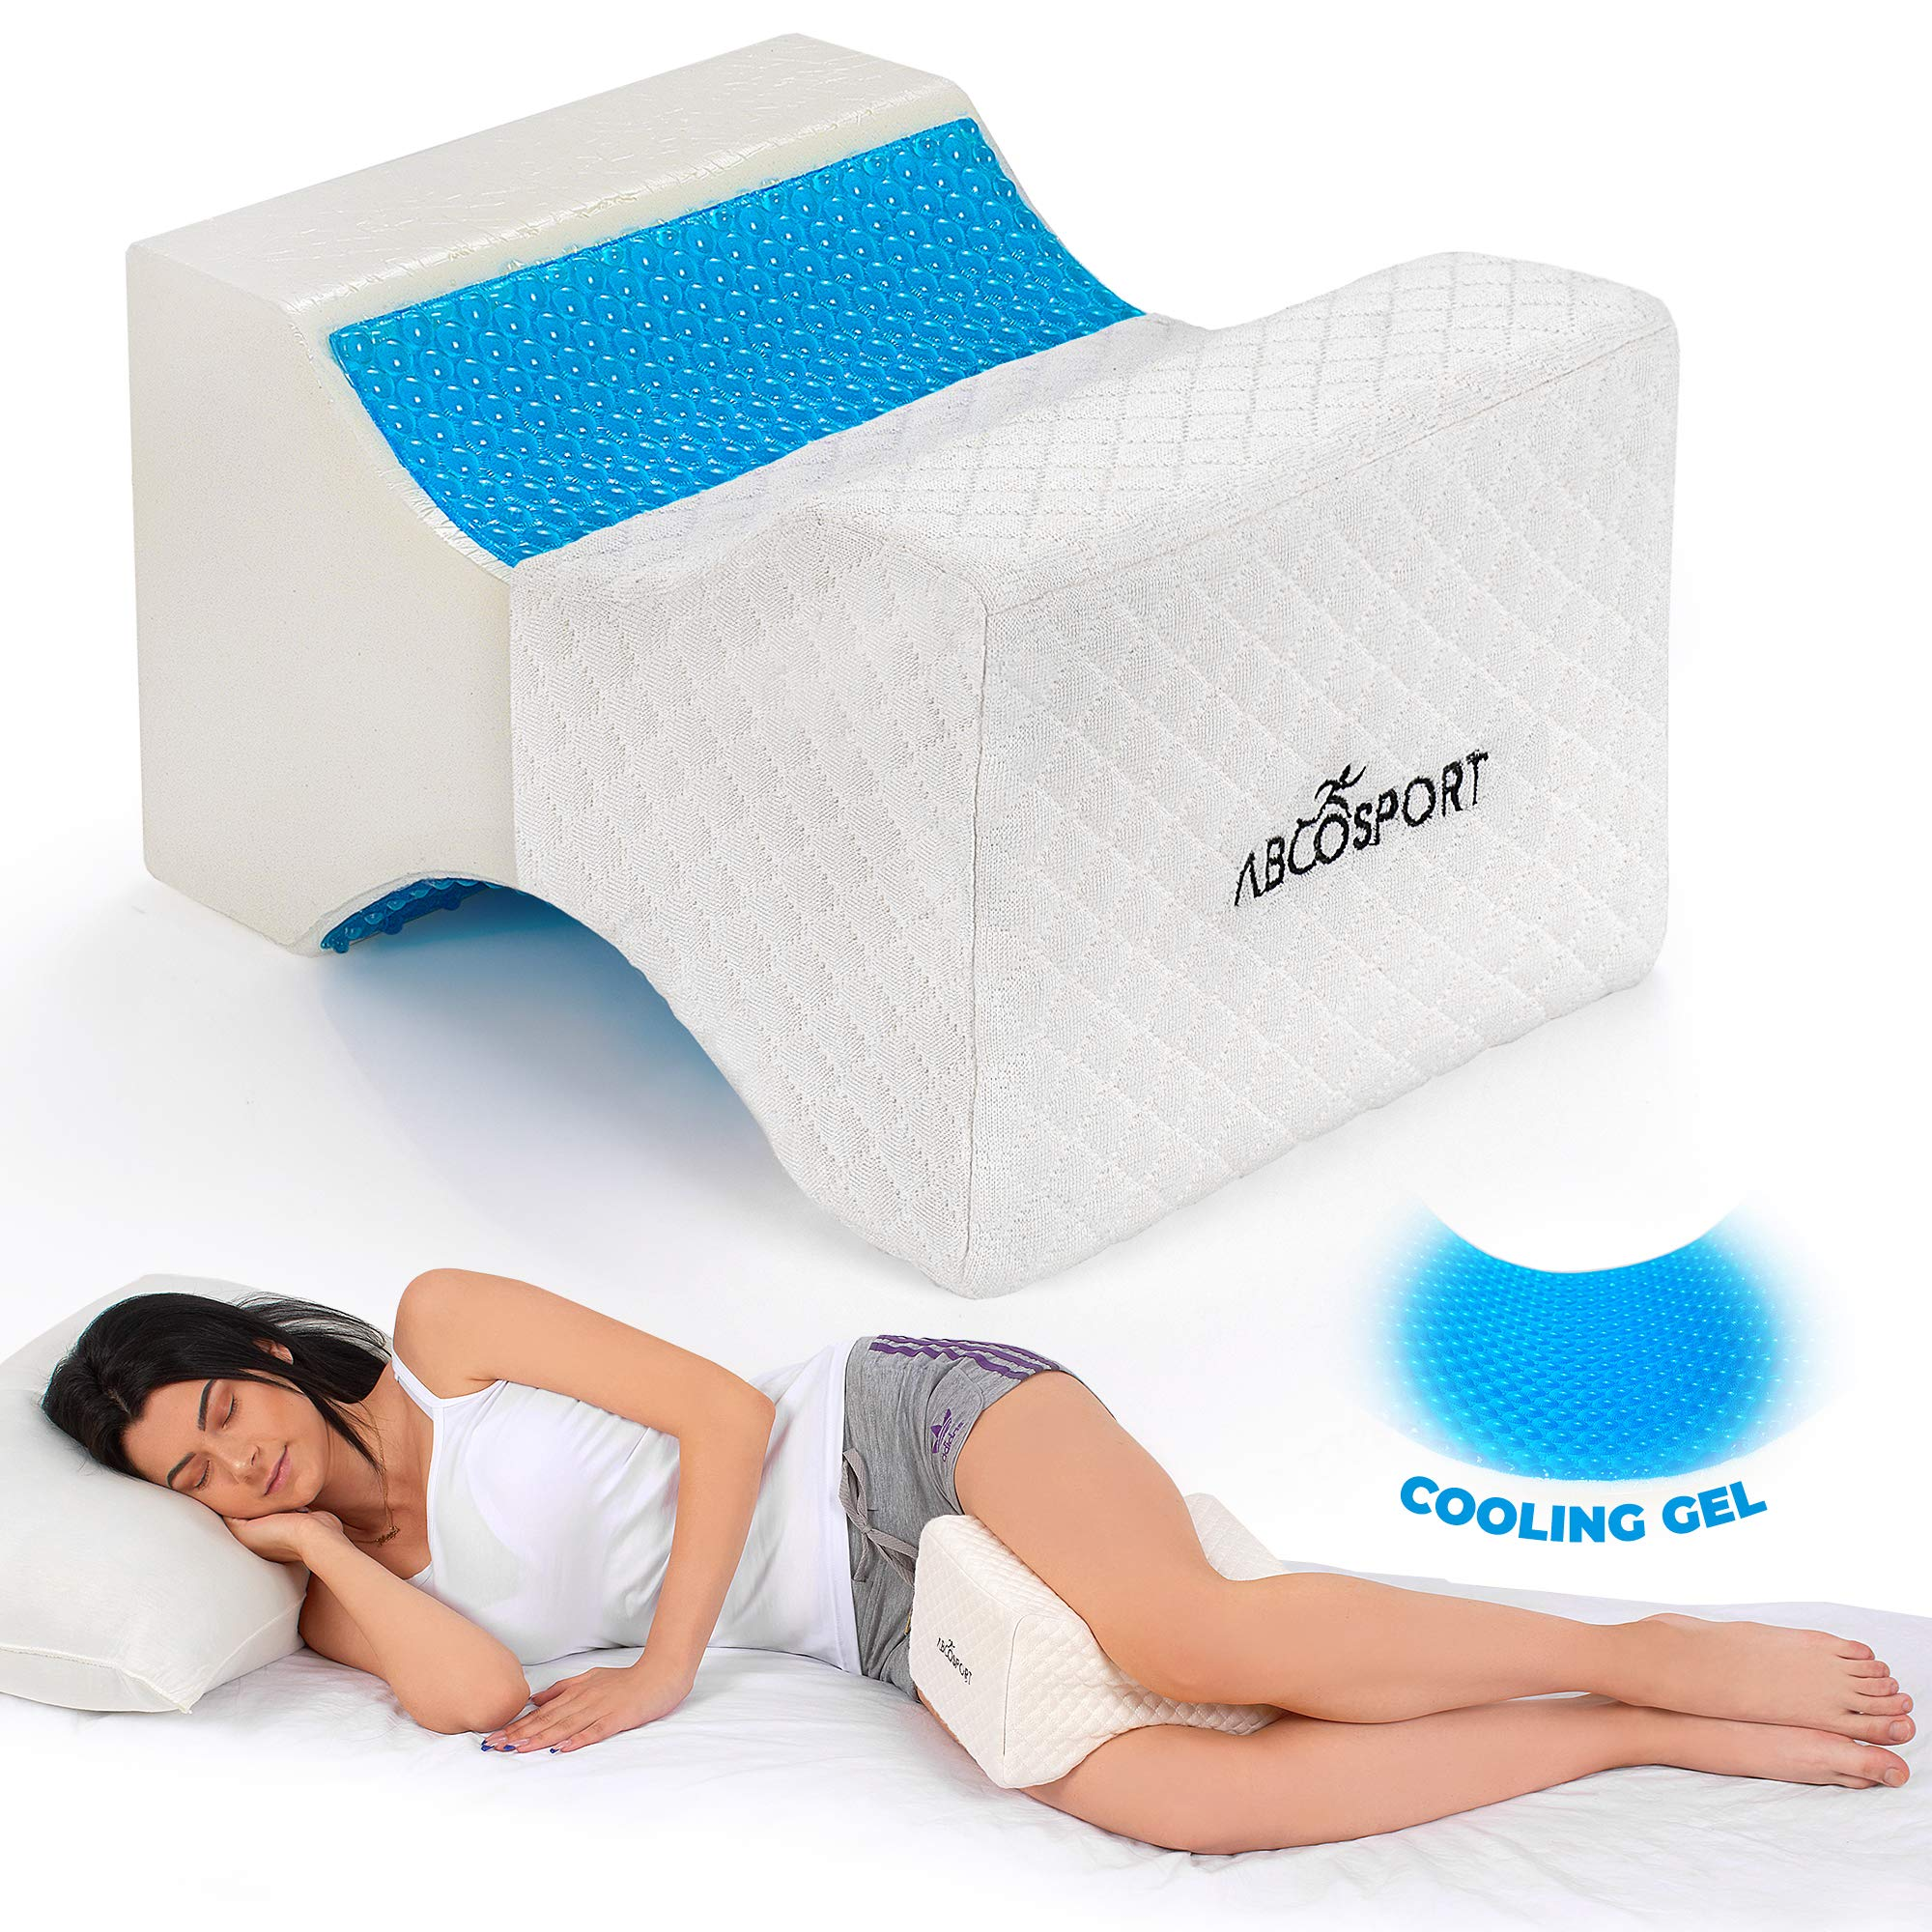 Memory Foam Knee Pillow with Cooling Gel - Leg Pillow Wedge for Side Sleepers, Pregnancy, Spine Alignment & Pain Relief - Breathable, Hypoallergenic & Comfortable - with Washable Cover